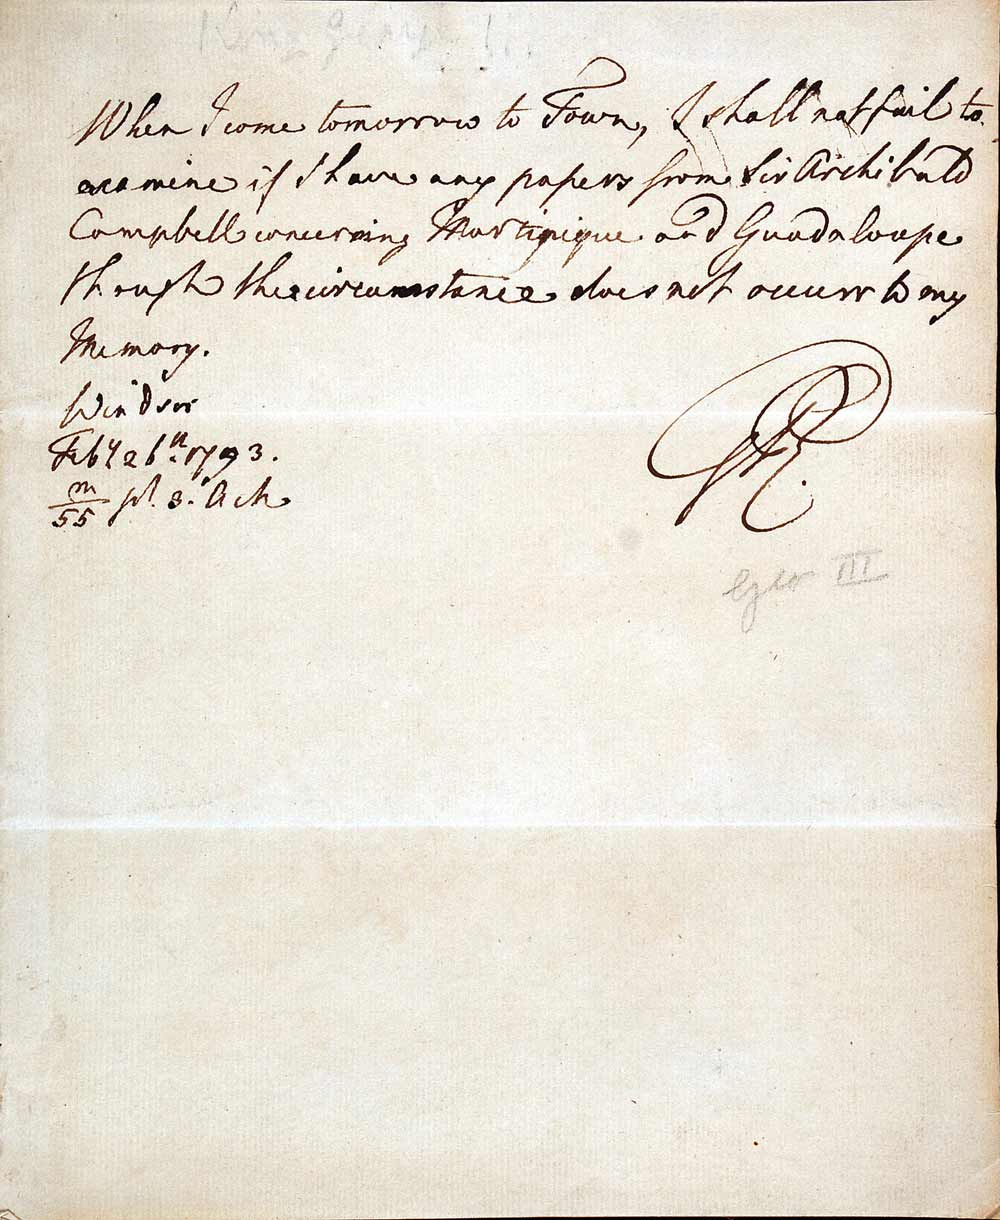 Letter initialled. George III to 'Sir', Windsor, London, 26 February 1793.